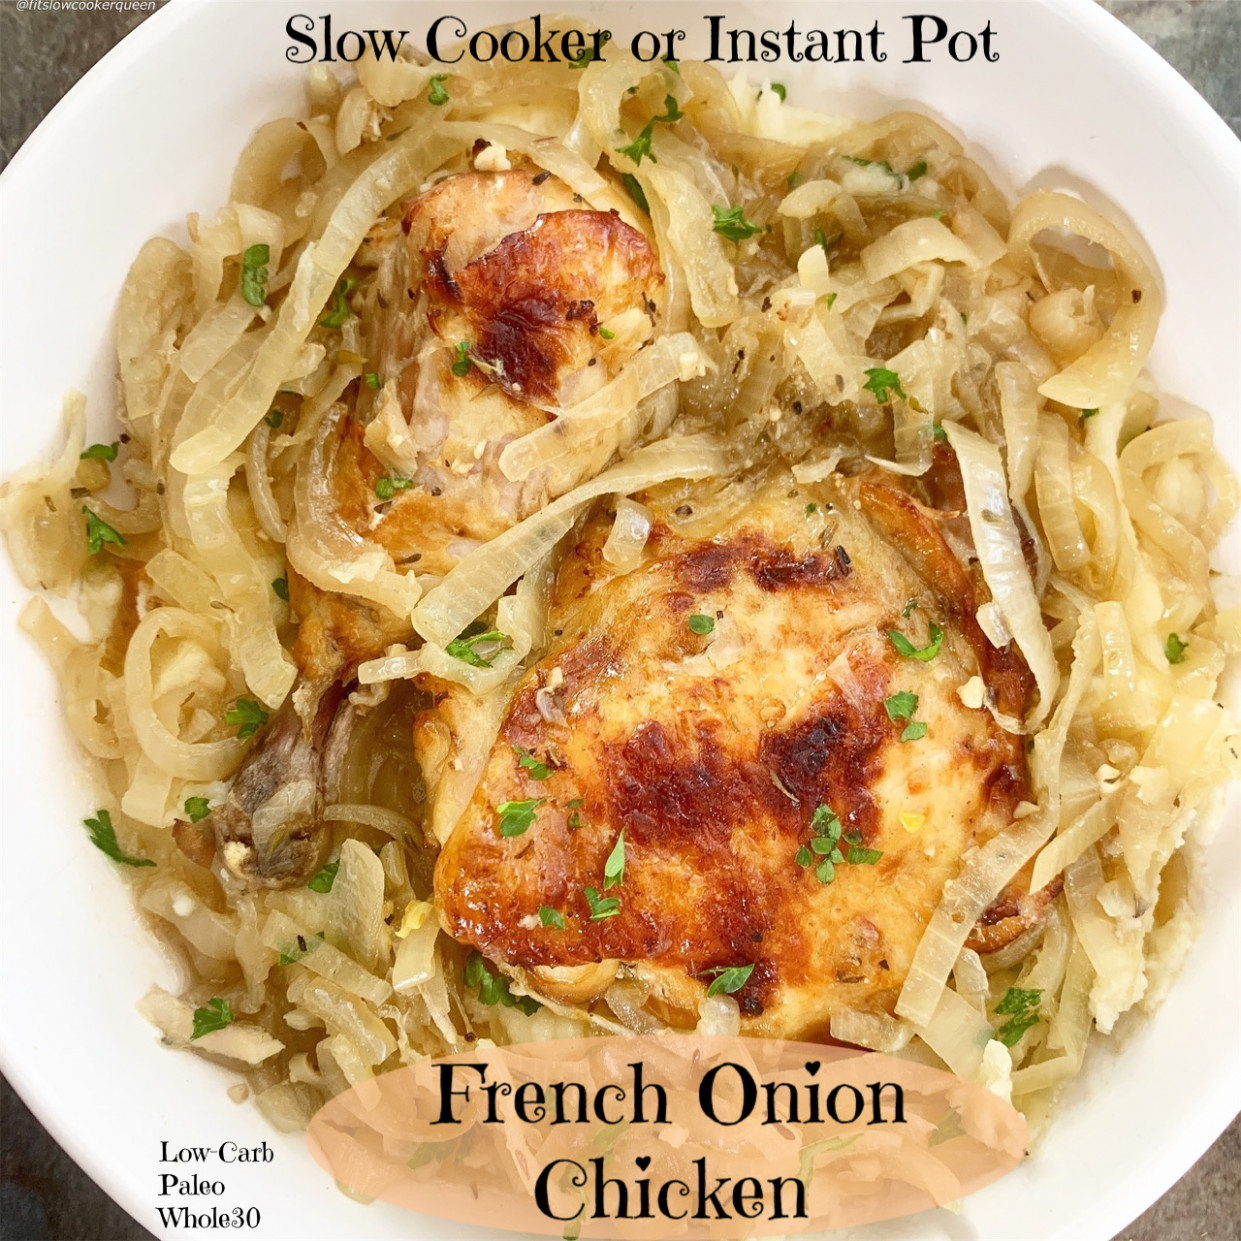 Slow Cooker/Instant Pot French Onion Chicken (Low-Carb, Paleo, Whole15)